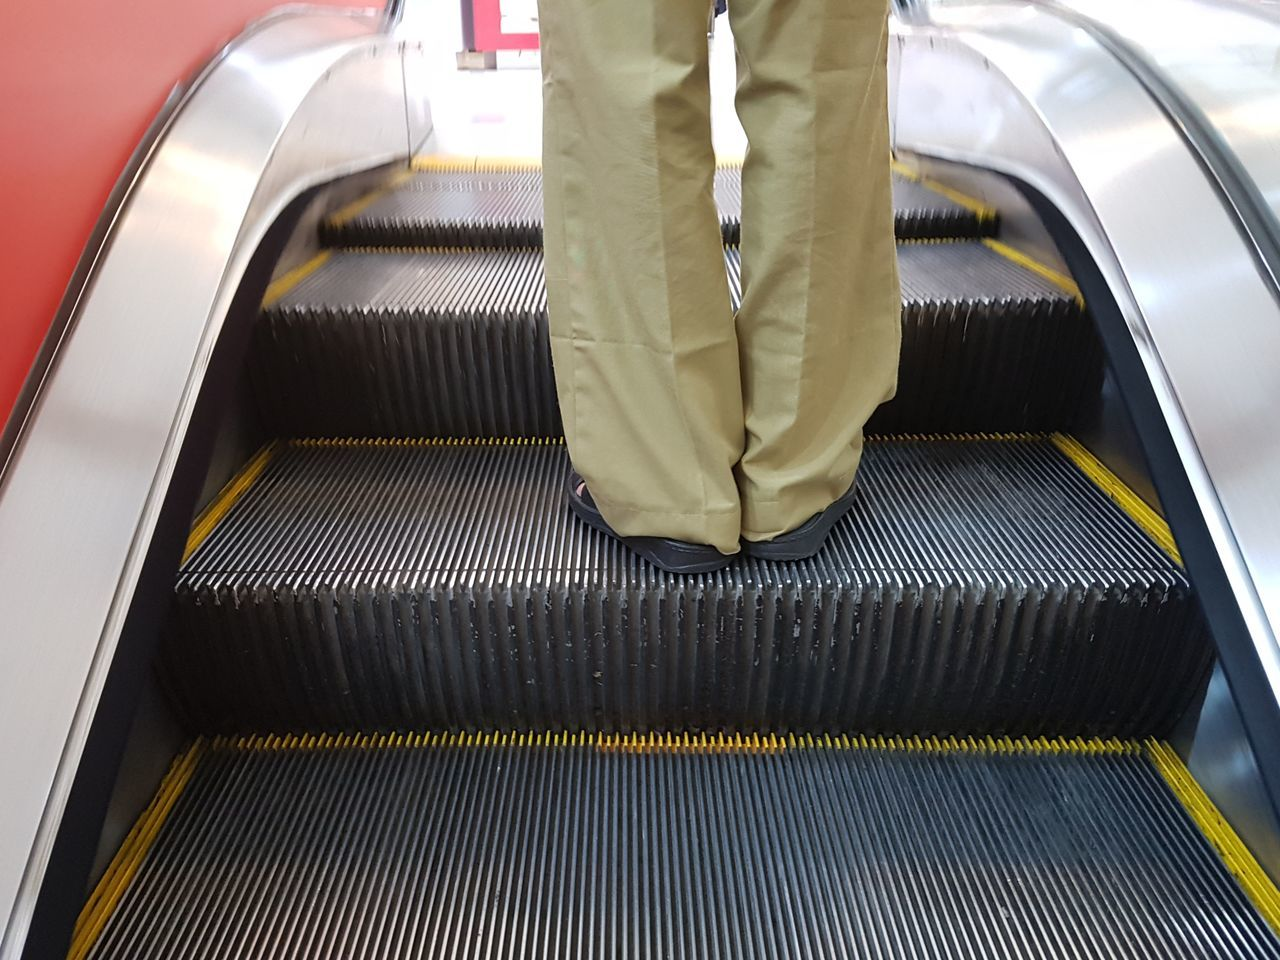 transportation, technology, one person, mode of transportation, escalator, convenience, real people, indoors, motion, low section, staircase, human body part, human leg, men, lifestyles, steps and staircases, travel, vehicle interior, on the move, moving walkway, modern